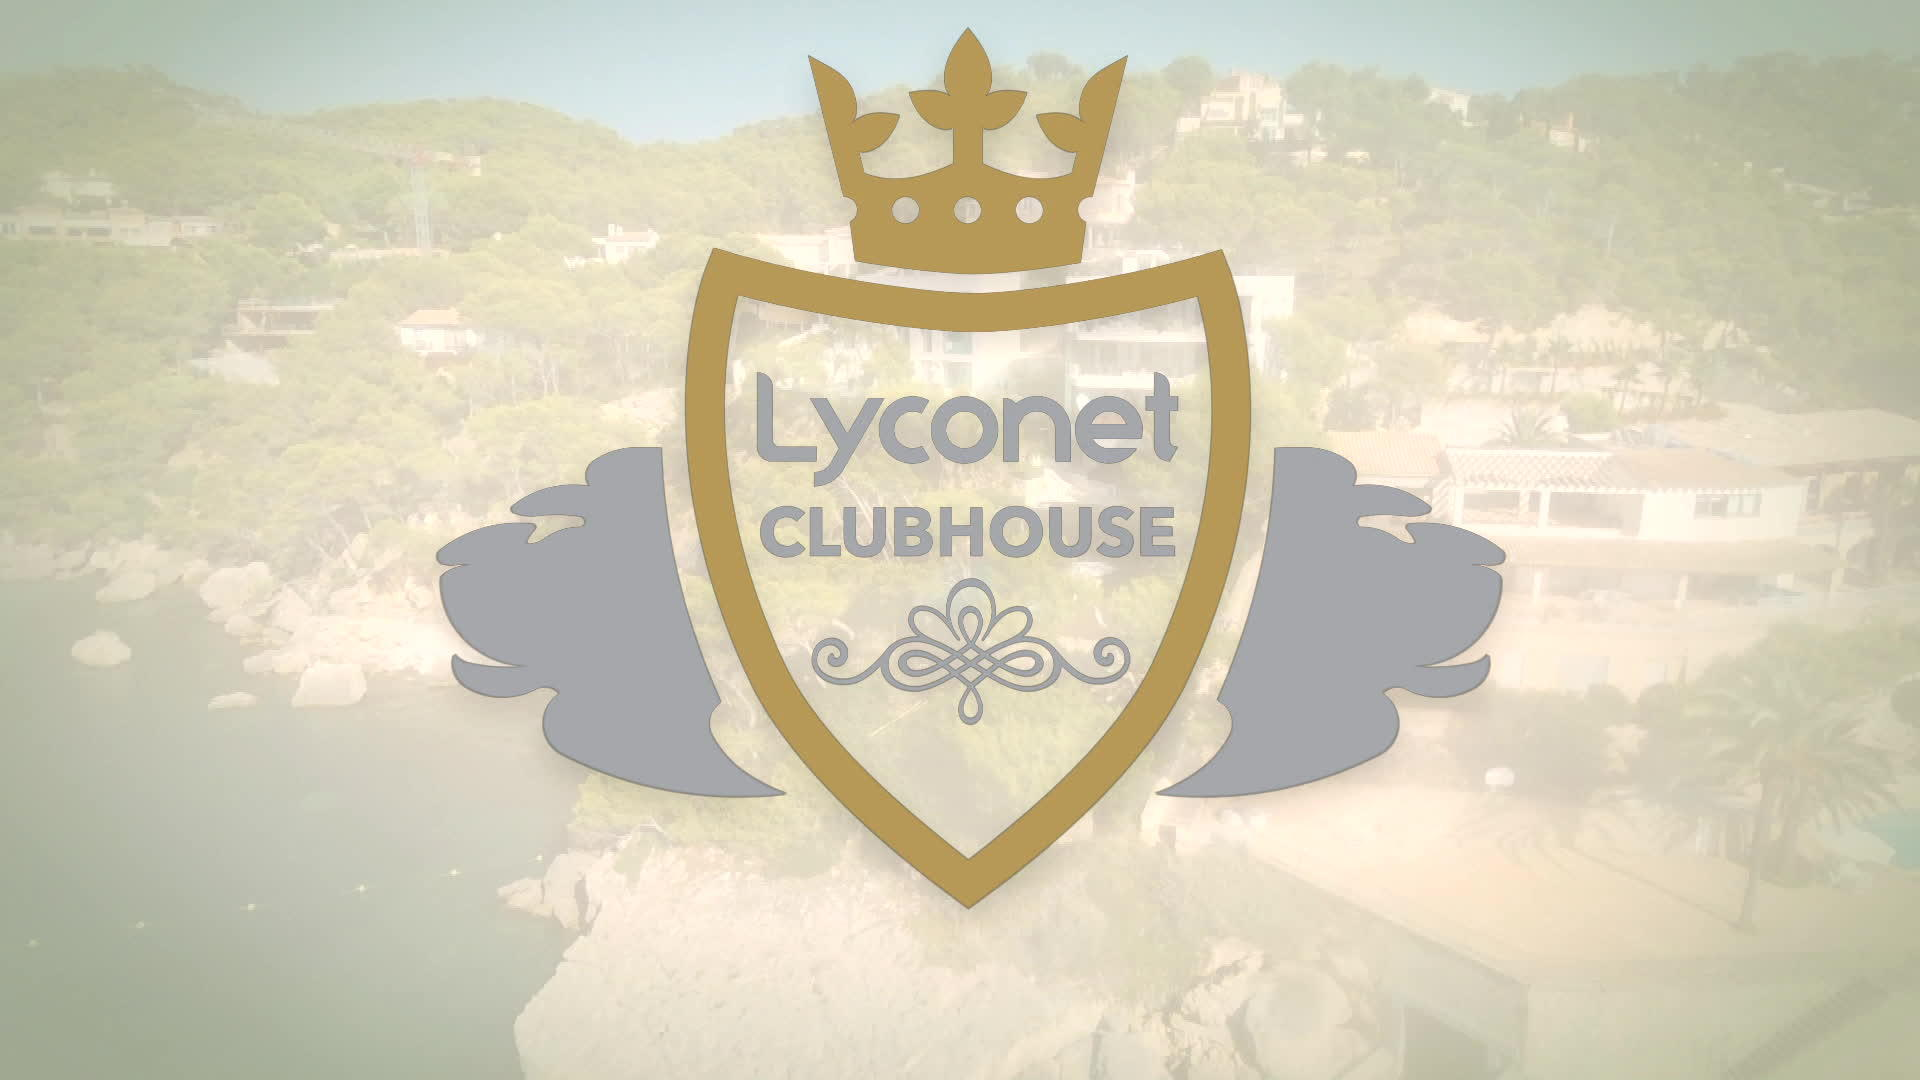 Lyconet Clubhouse